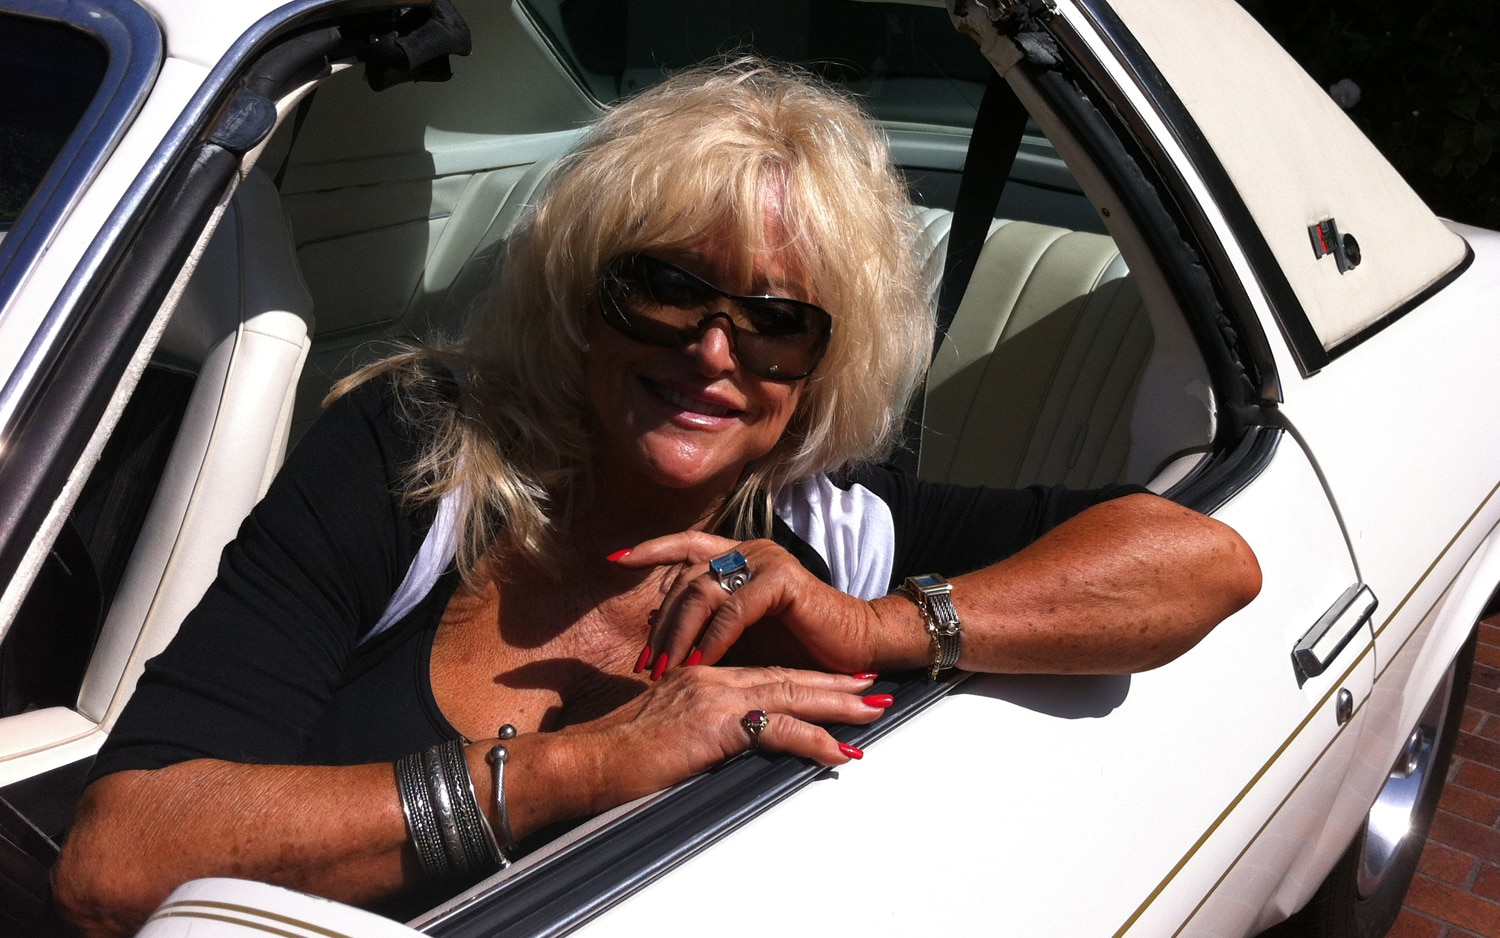 Miss Hurst Golden Shifter In Her Vintage 1975 Hurst Olds